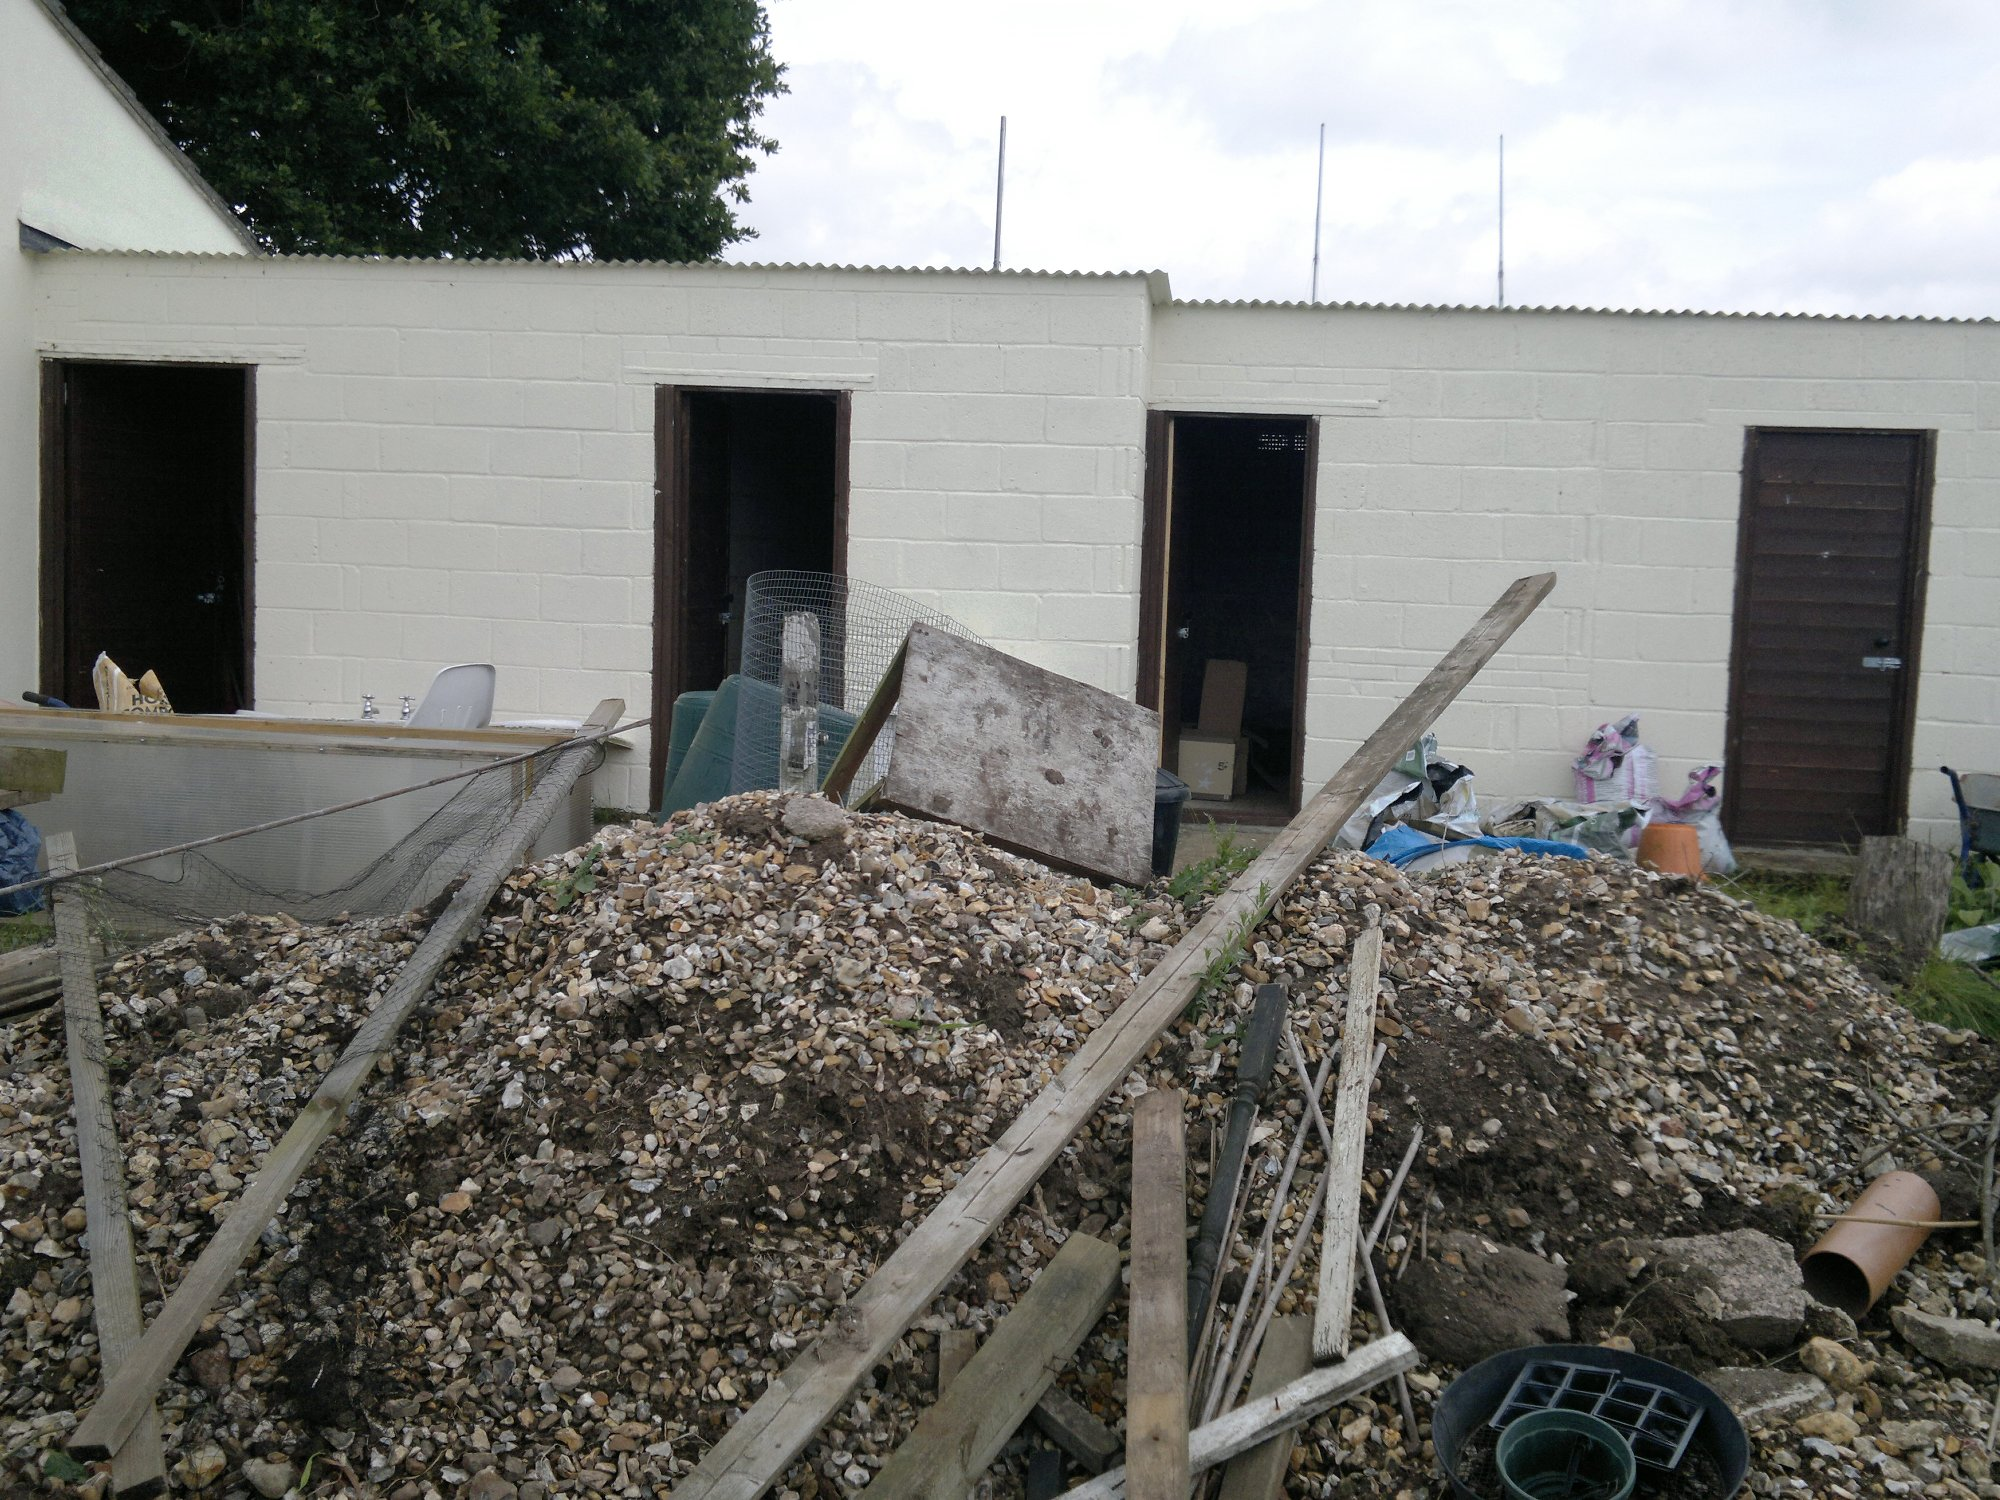 Renovated outbuildings in the background, huge pile of stones sieved from the vegetable beds in the foreground